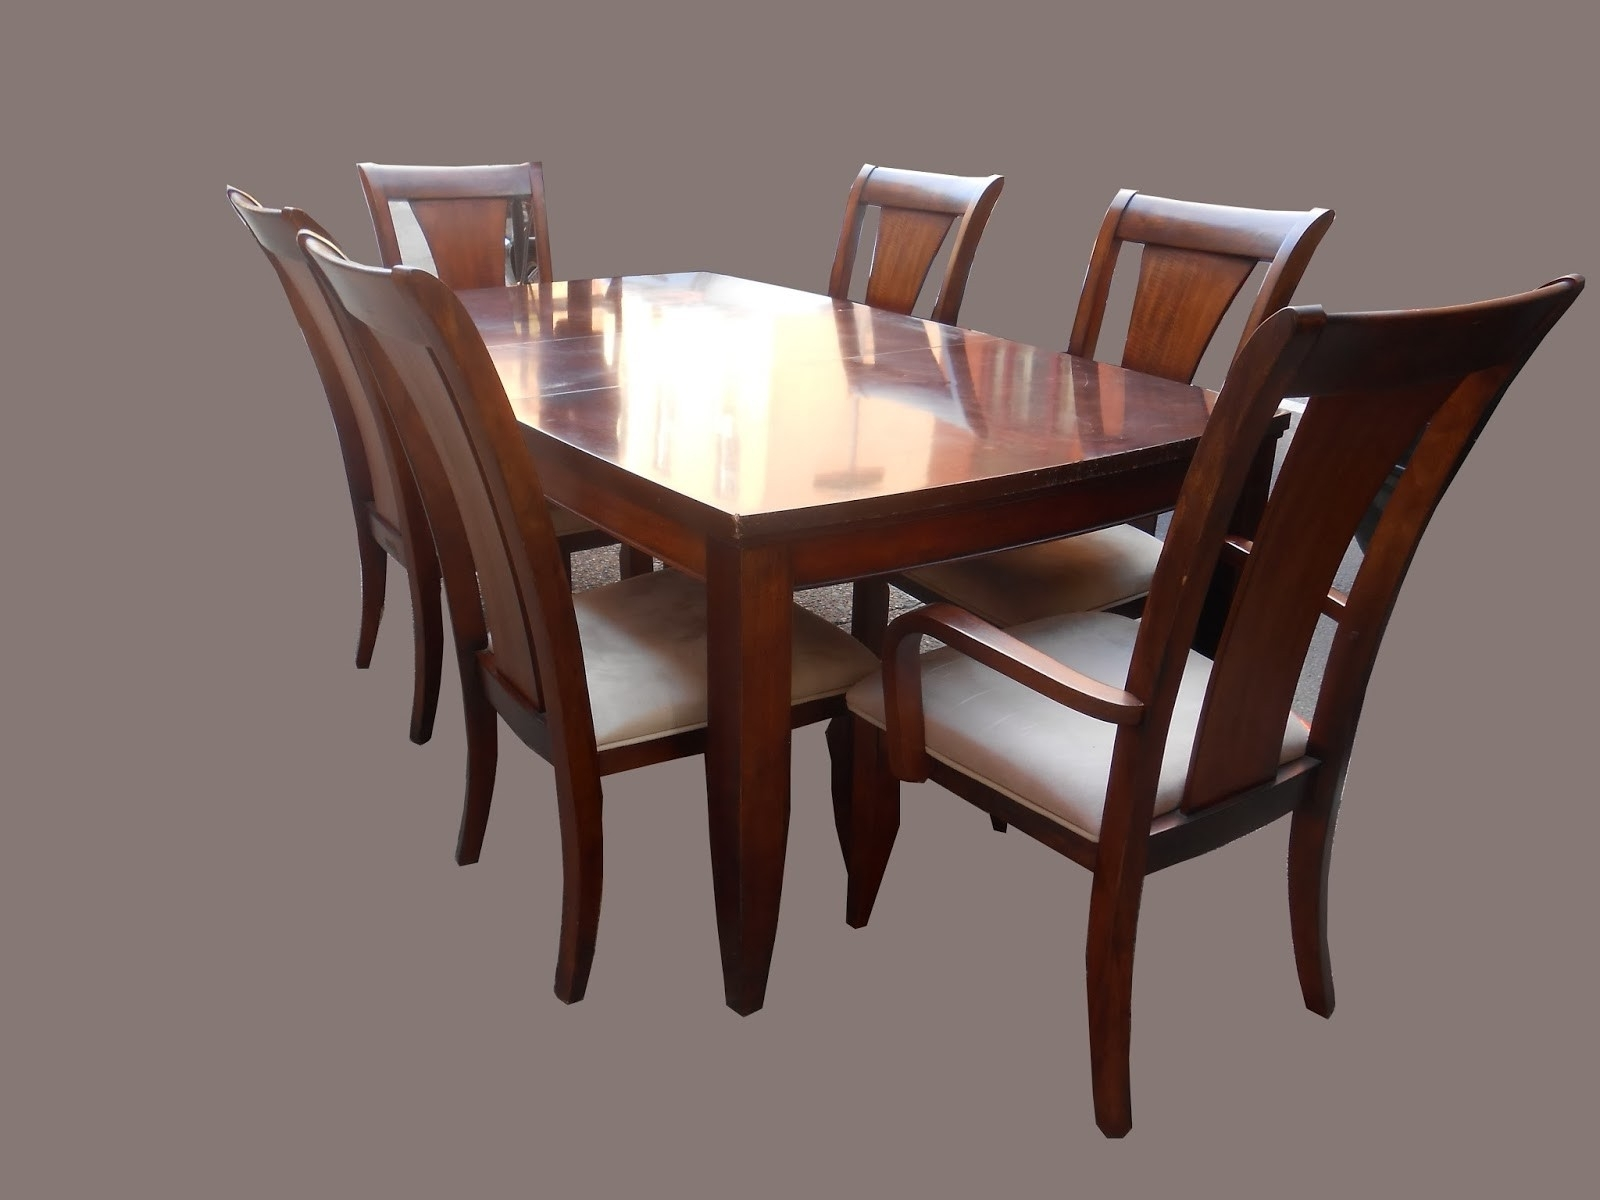 Preferred Dining Table Sets With 6 Chairs Awesome Uhuru Furniture Within Mahogany Dining Table Sets (View 18 of 25)